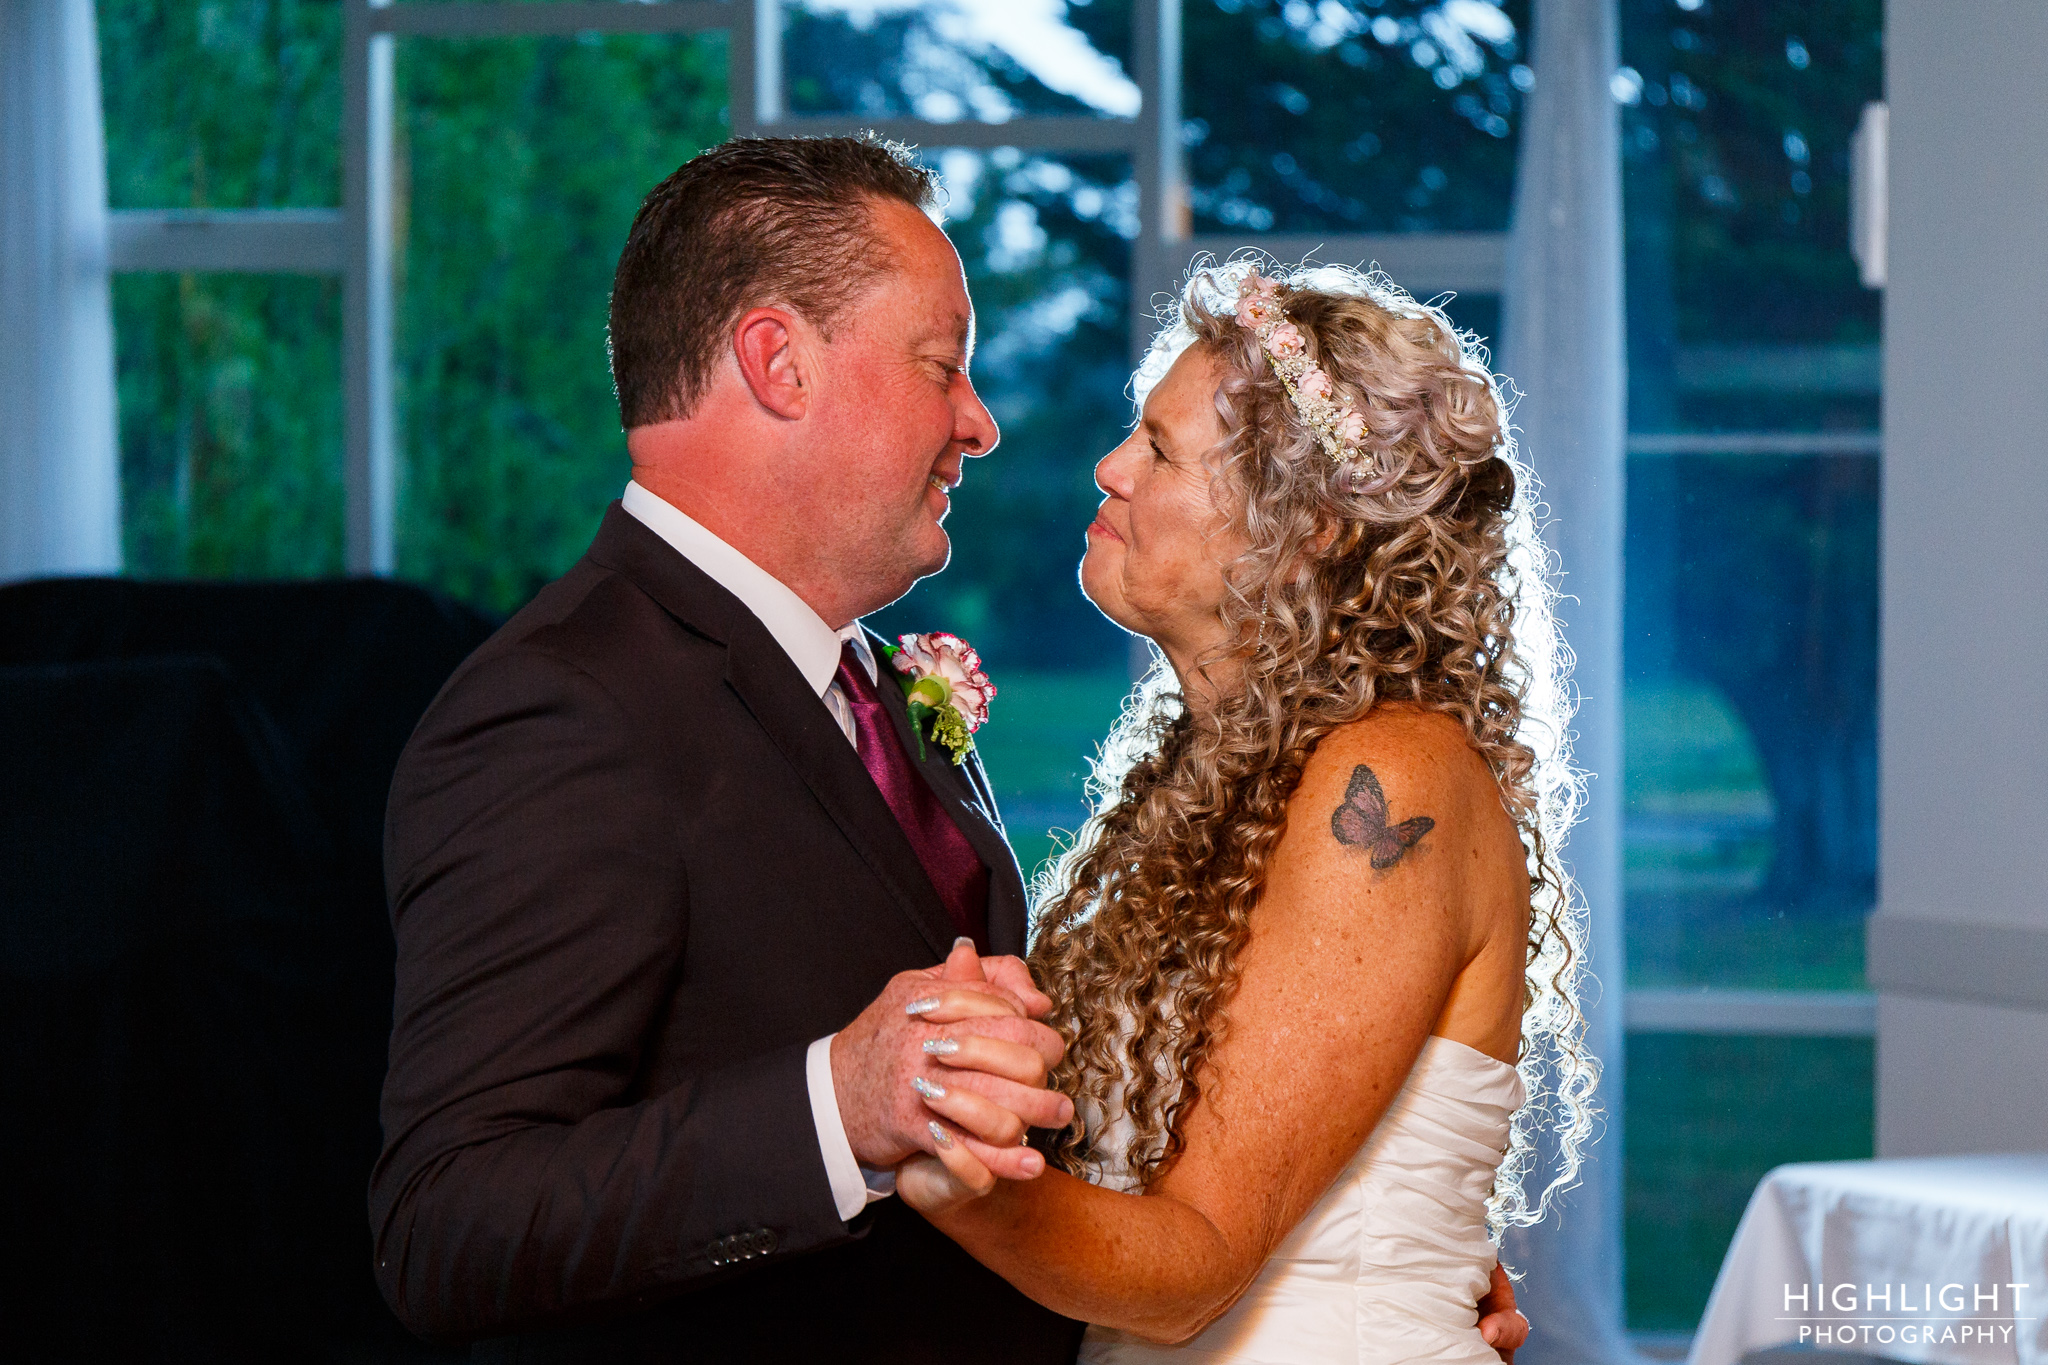 highlight_wedding_photography_palmerston_north_manawatu_chalet_wedding-121.jpg